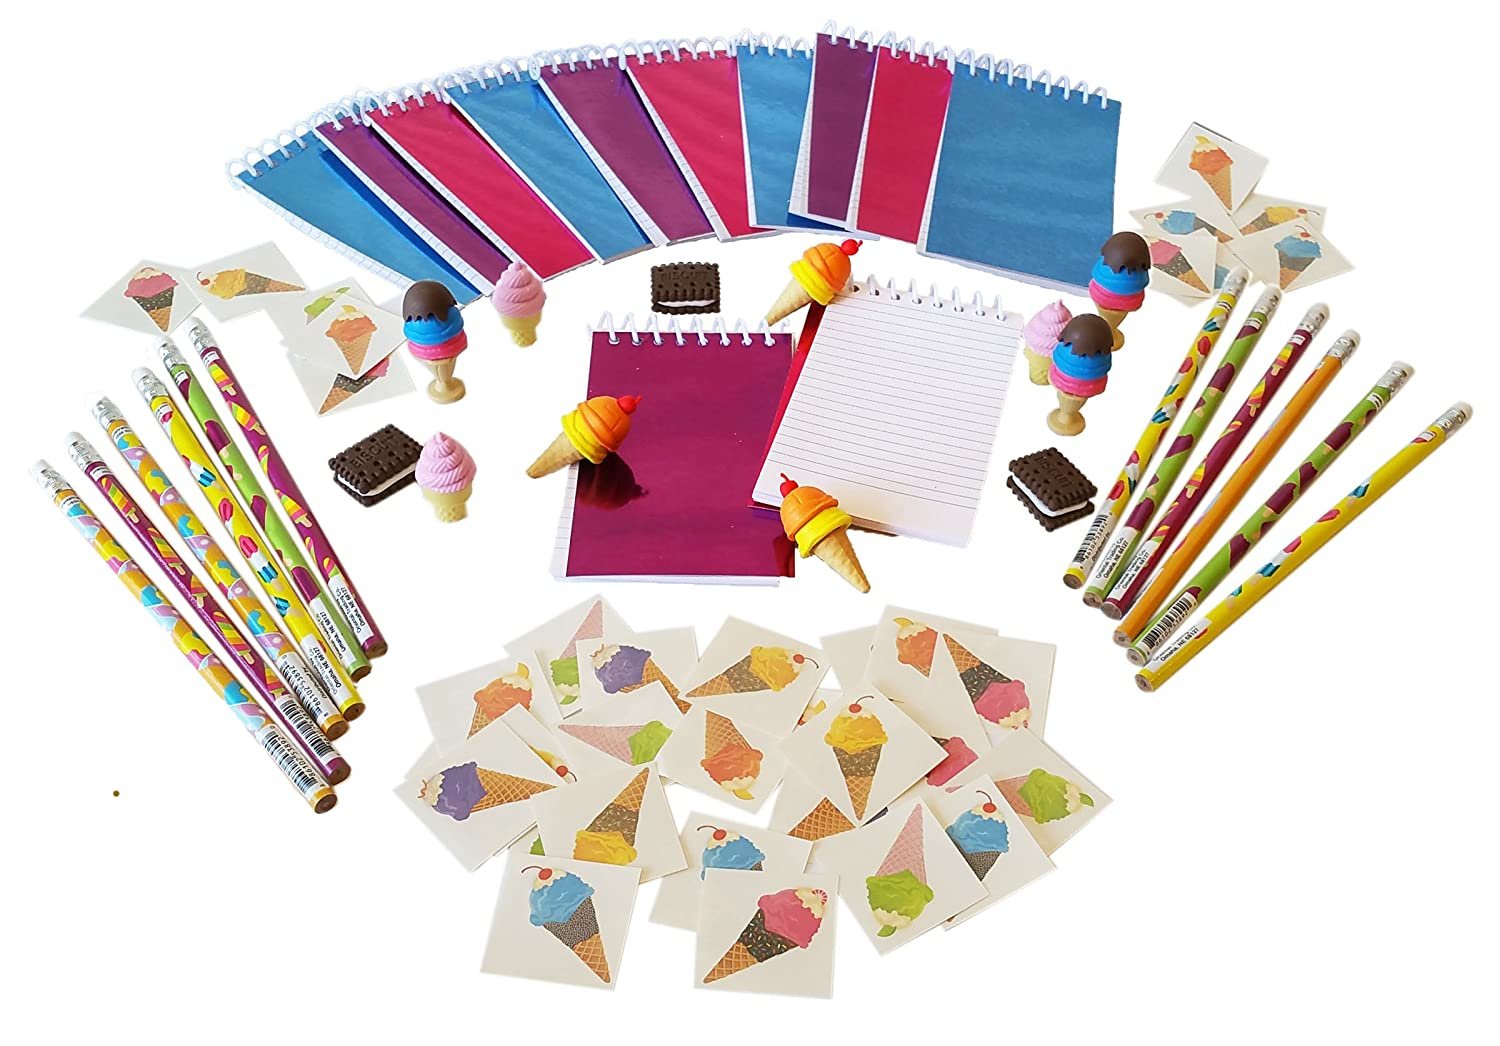 a93455e49 delicate Wiser Road Sweet Treats Ice Cream Notepads, Pencils, and Erasers  with 36 Bonus